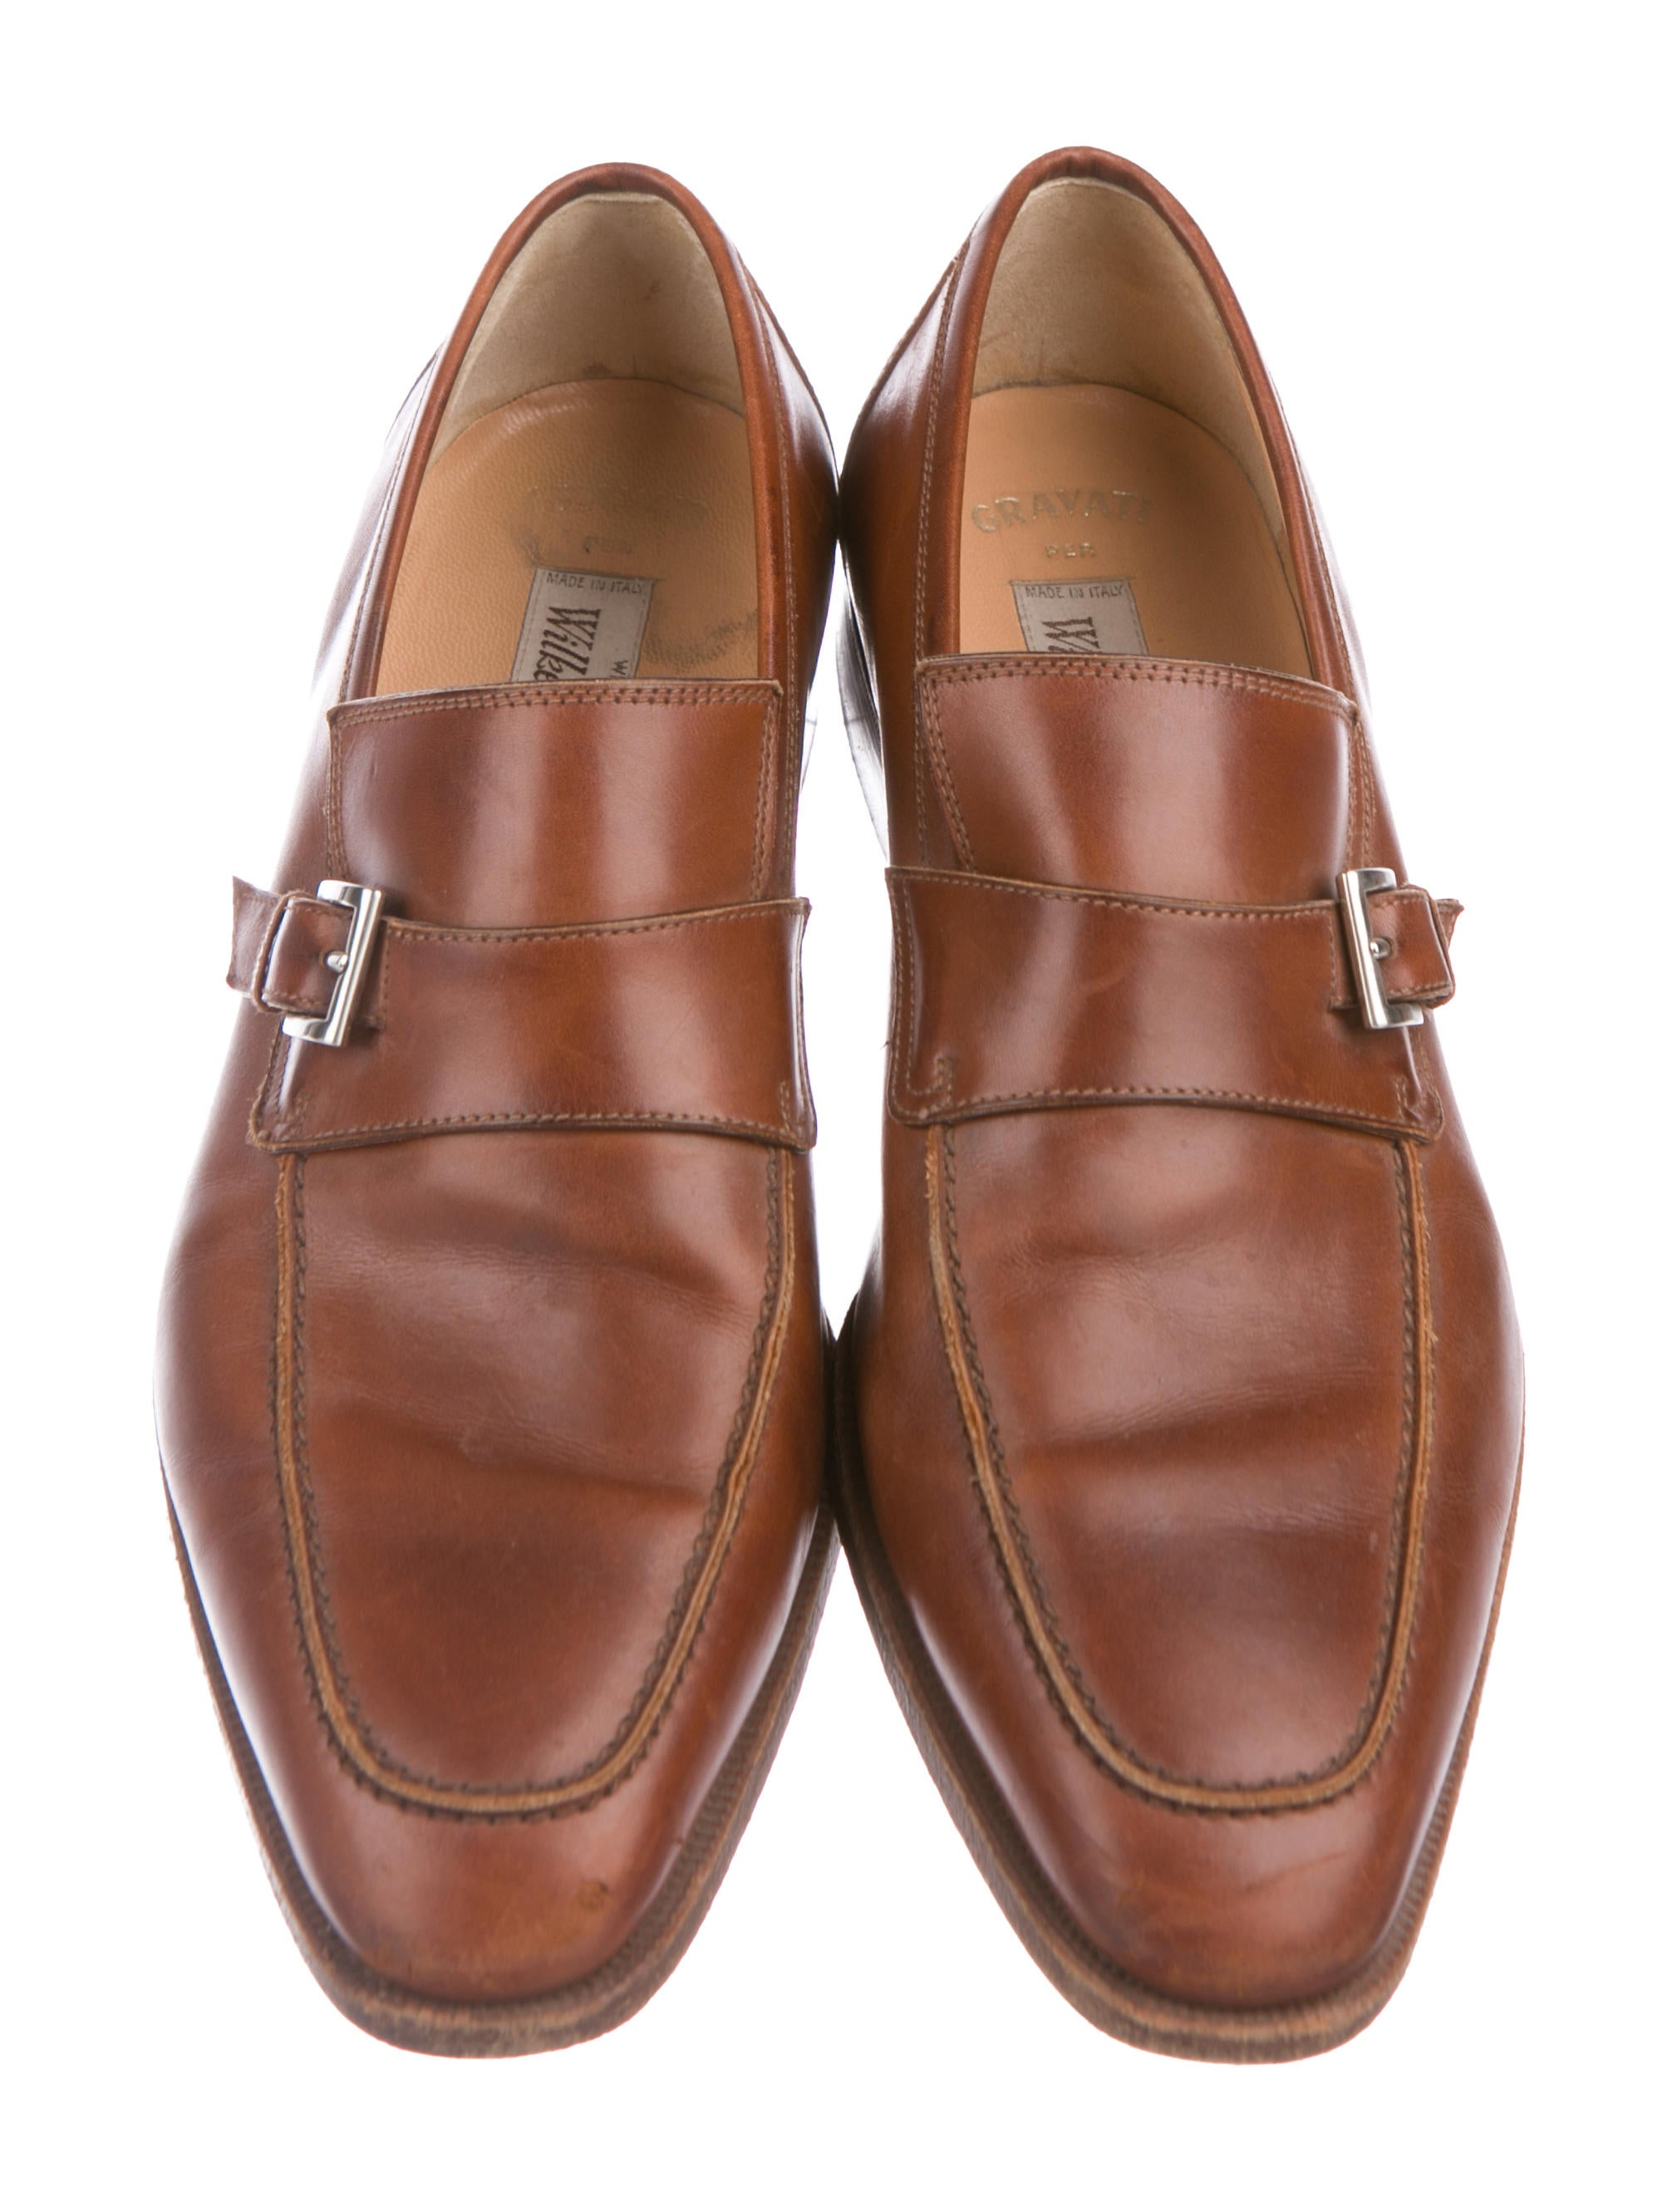 Gravati for Wilkes Bashford Leather Loafers Shoes